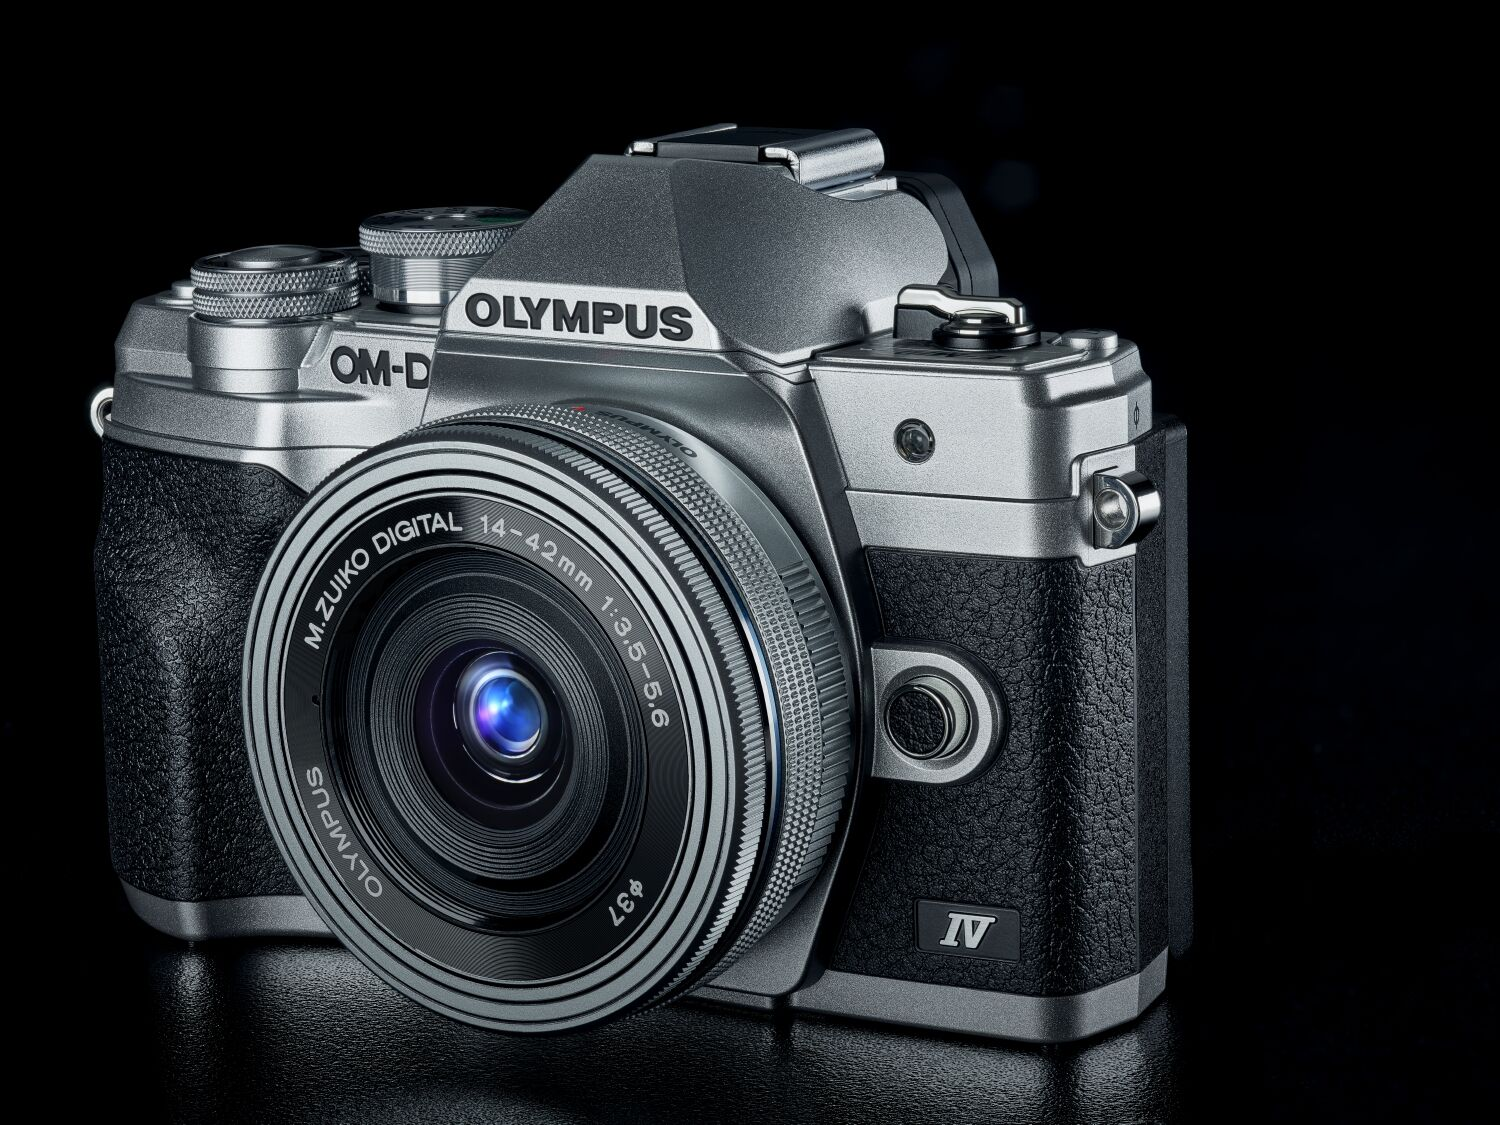 Olympus OM-D E-M10 Mark IV - one of the best digital cameras